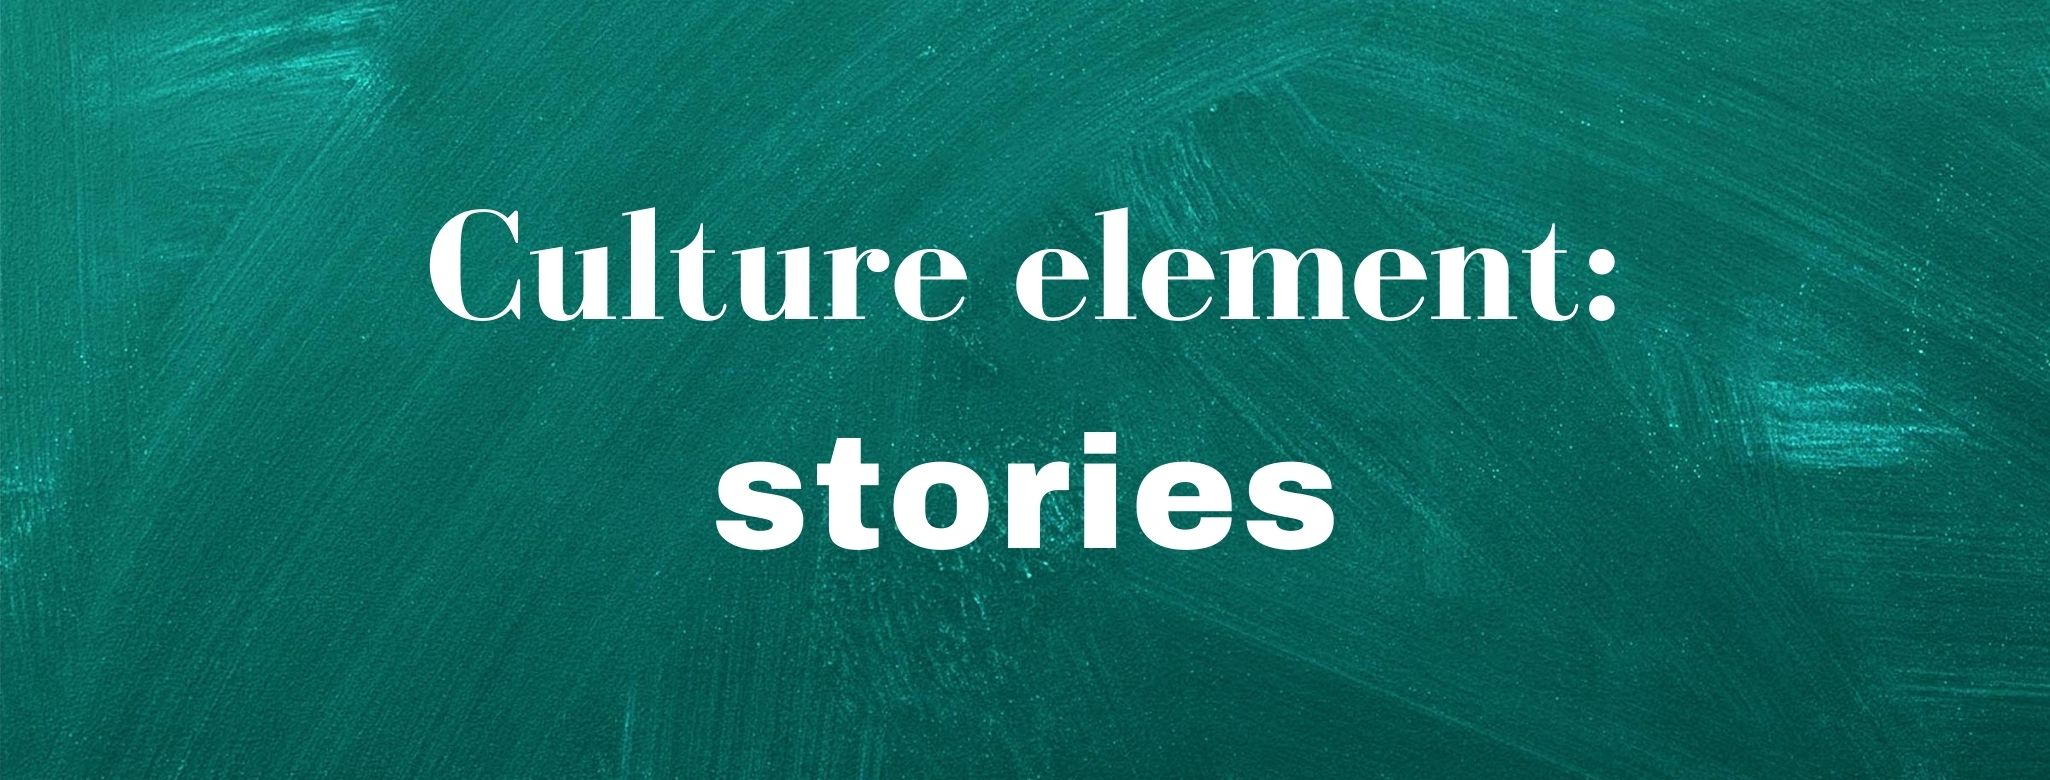 "Green textured background with the words ""Culture element: stories"" in white"